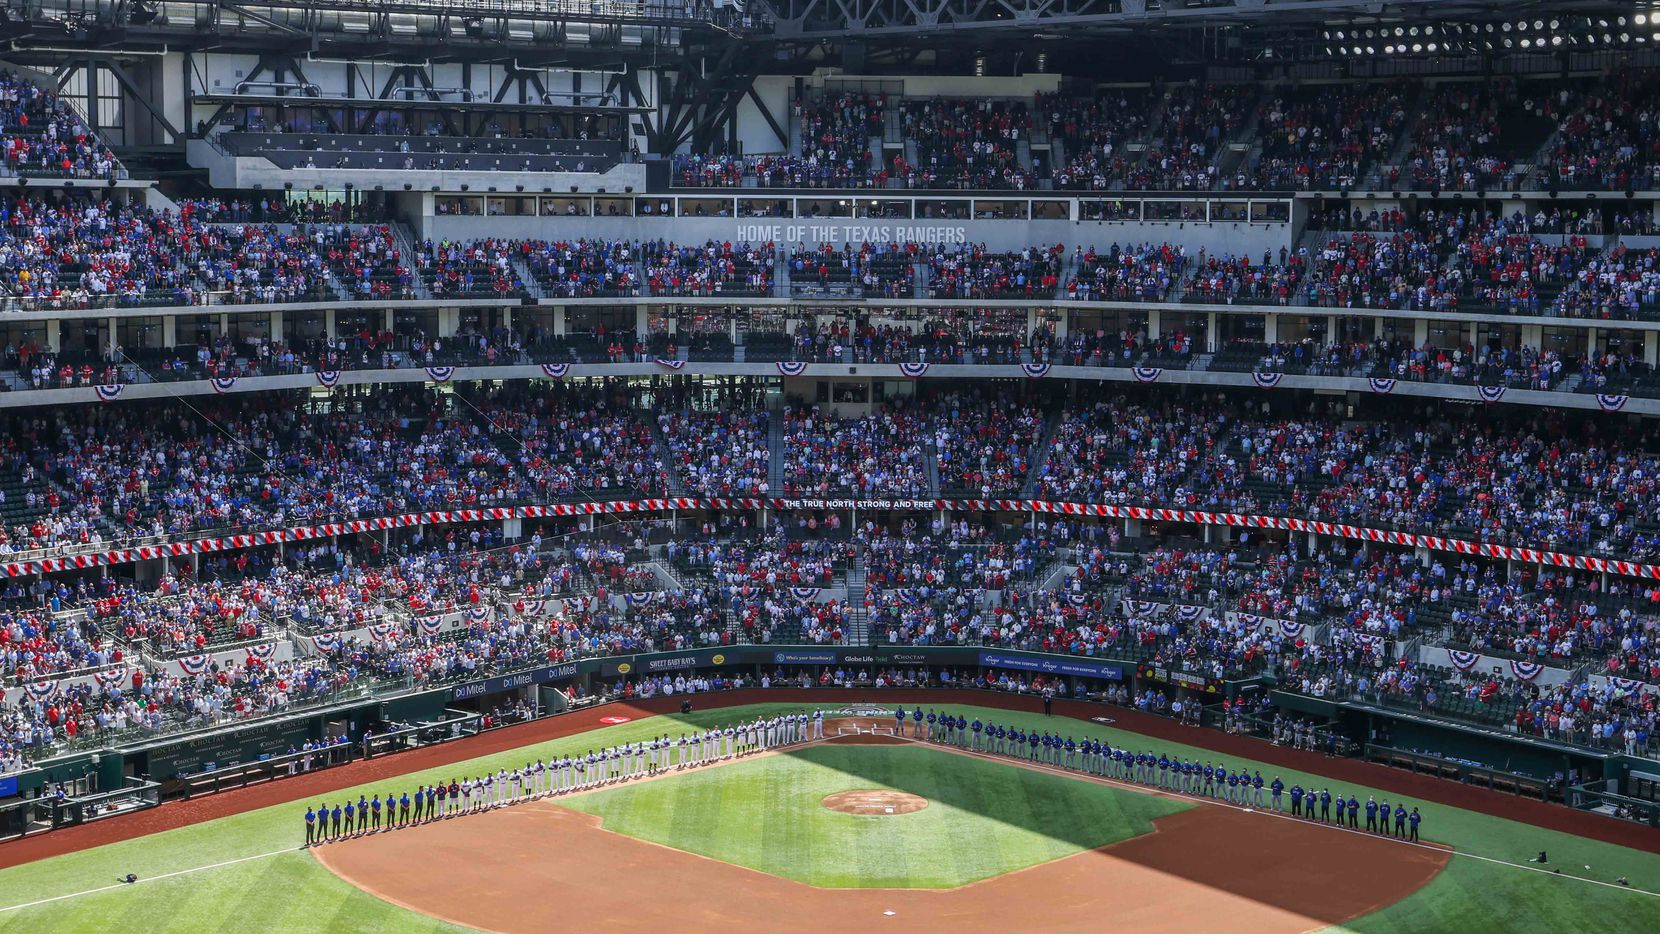 Texas Rangers and Toronto Blue Jays teams line up during the national anthem at the Globe Life Field during opening day in Arlington, Texas on Monday, April 5, 2021. (Lola Gomez/The Dallas Morning News)